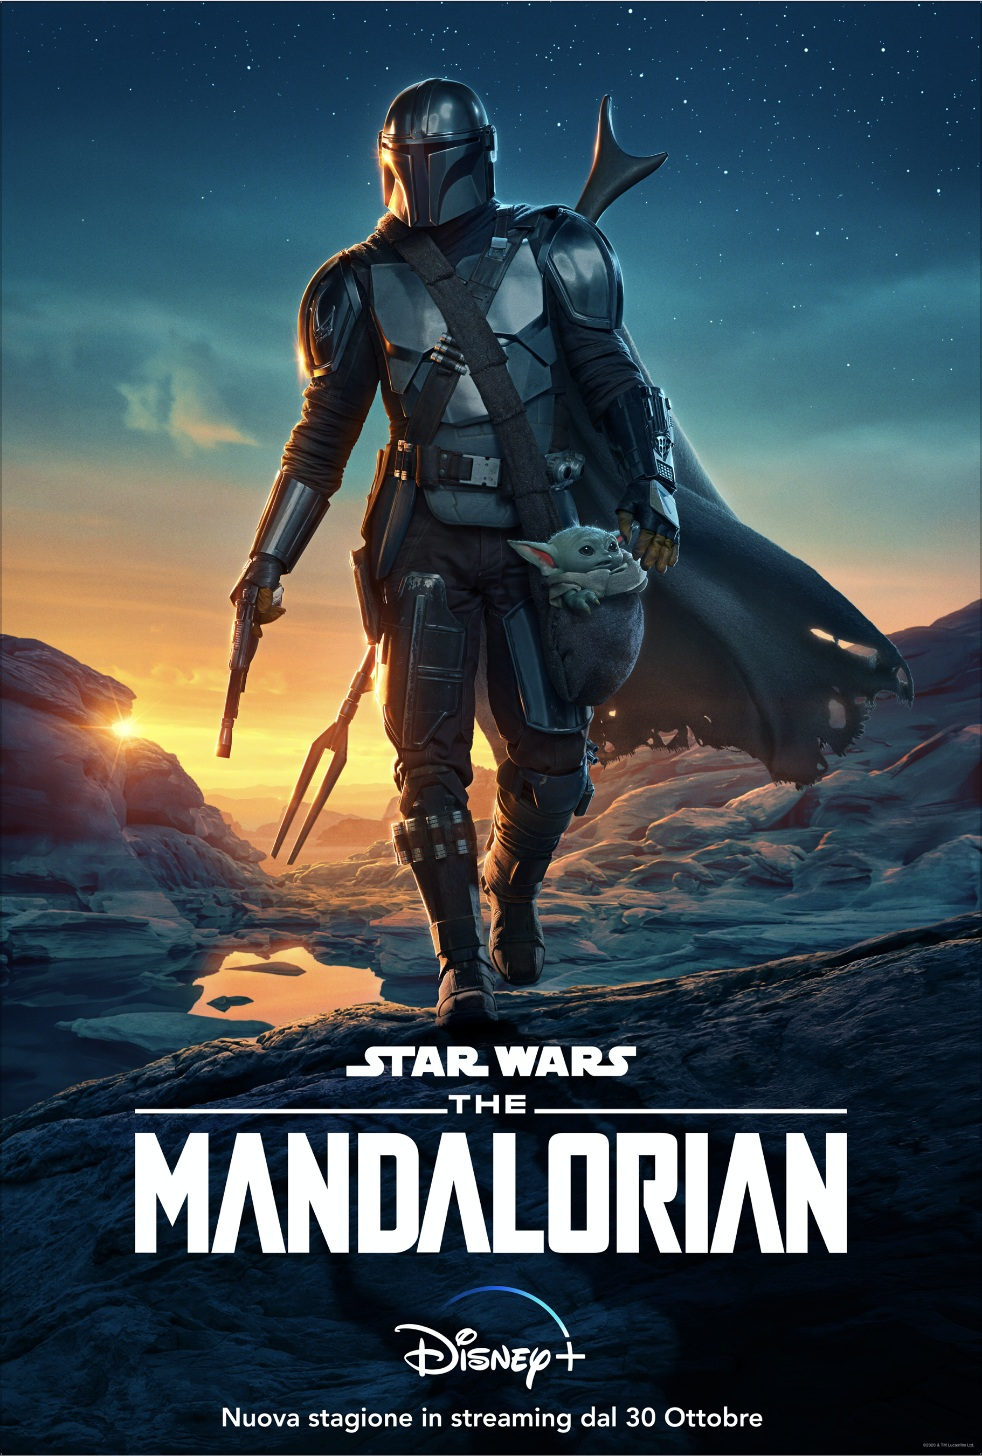 The Mandalorian 2 in streaming dal 30 ottobre